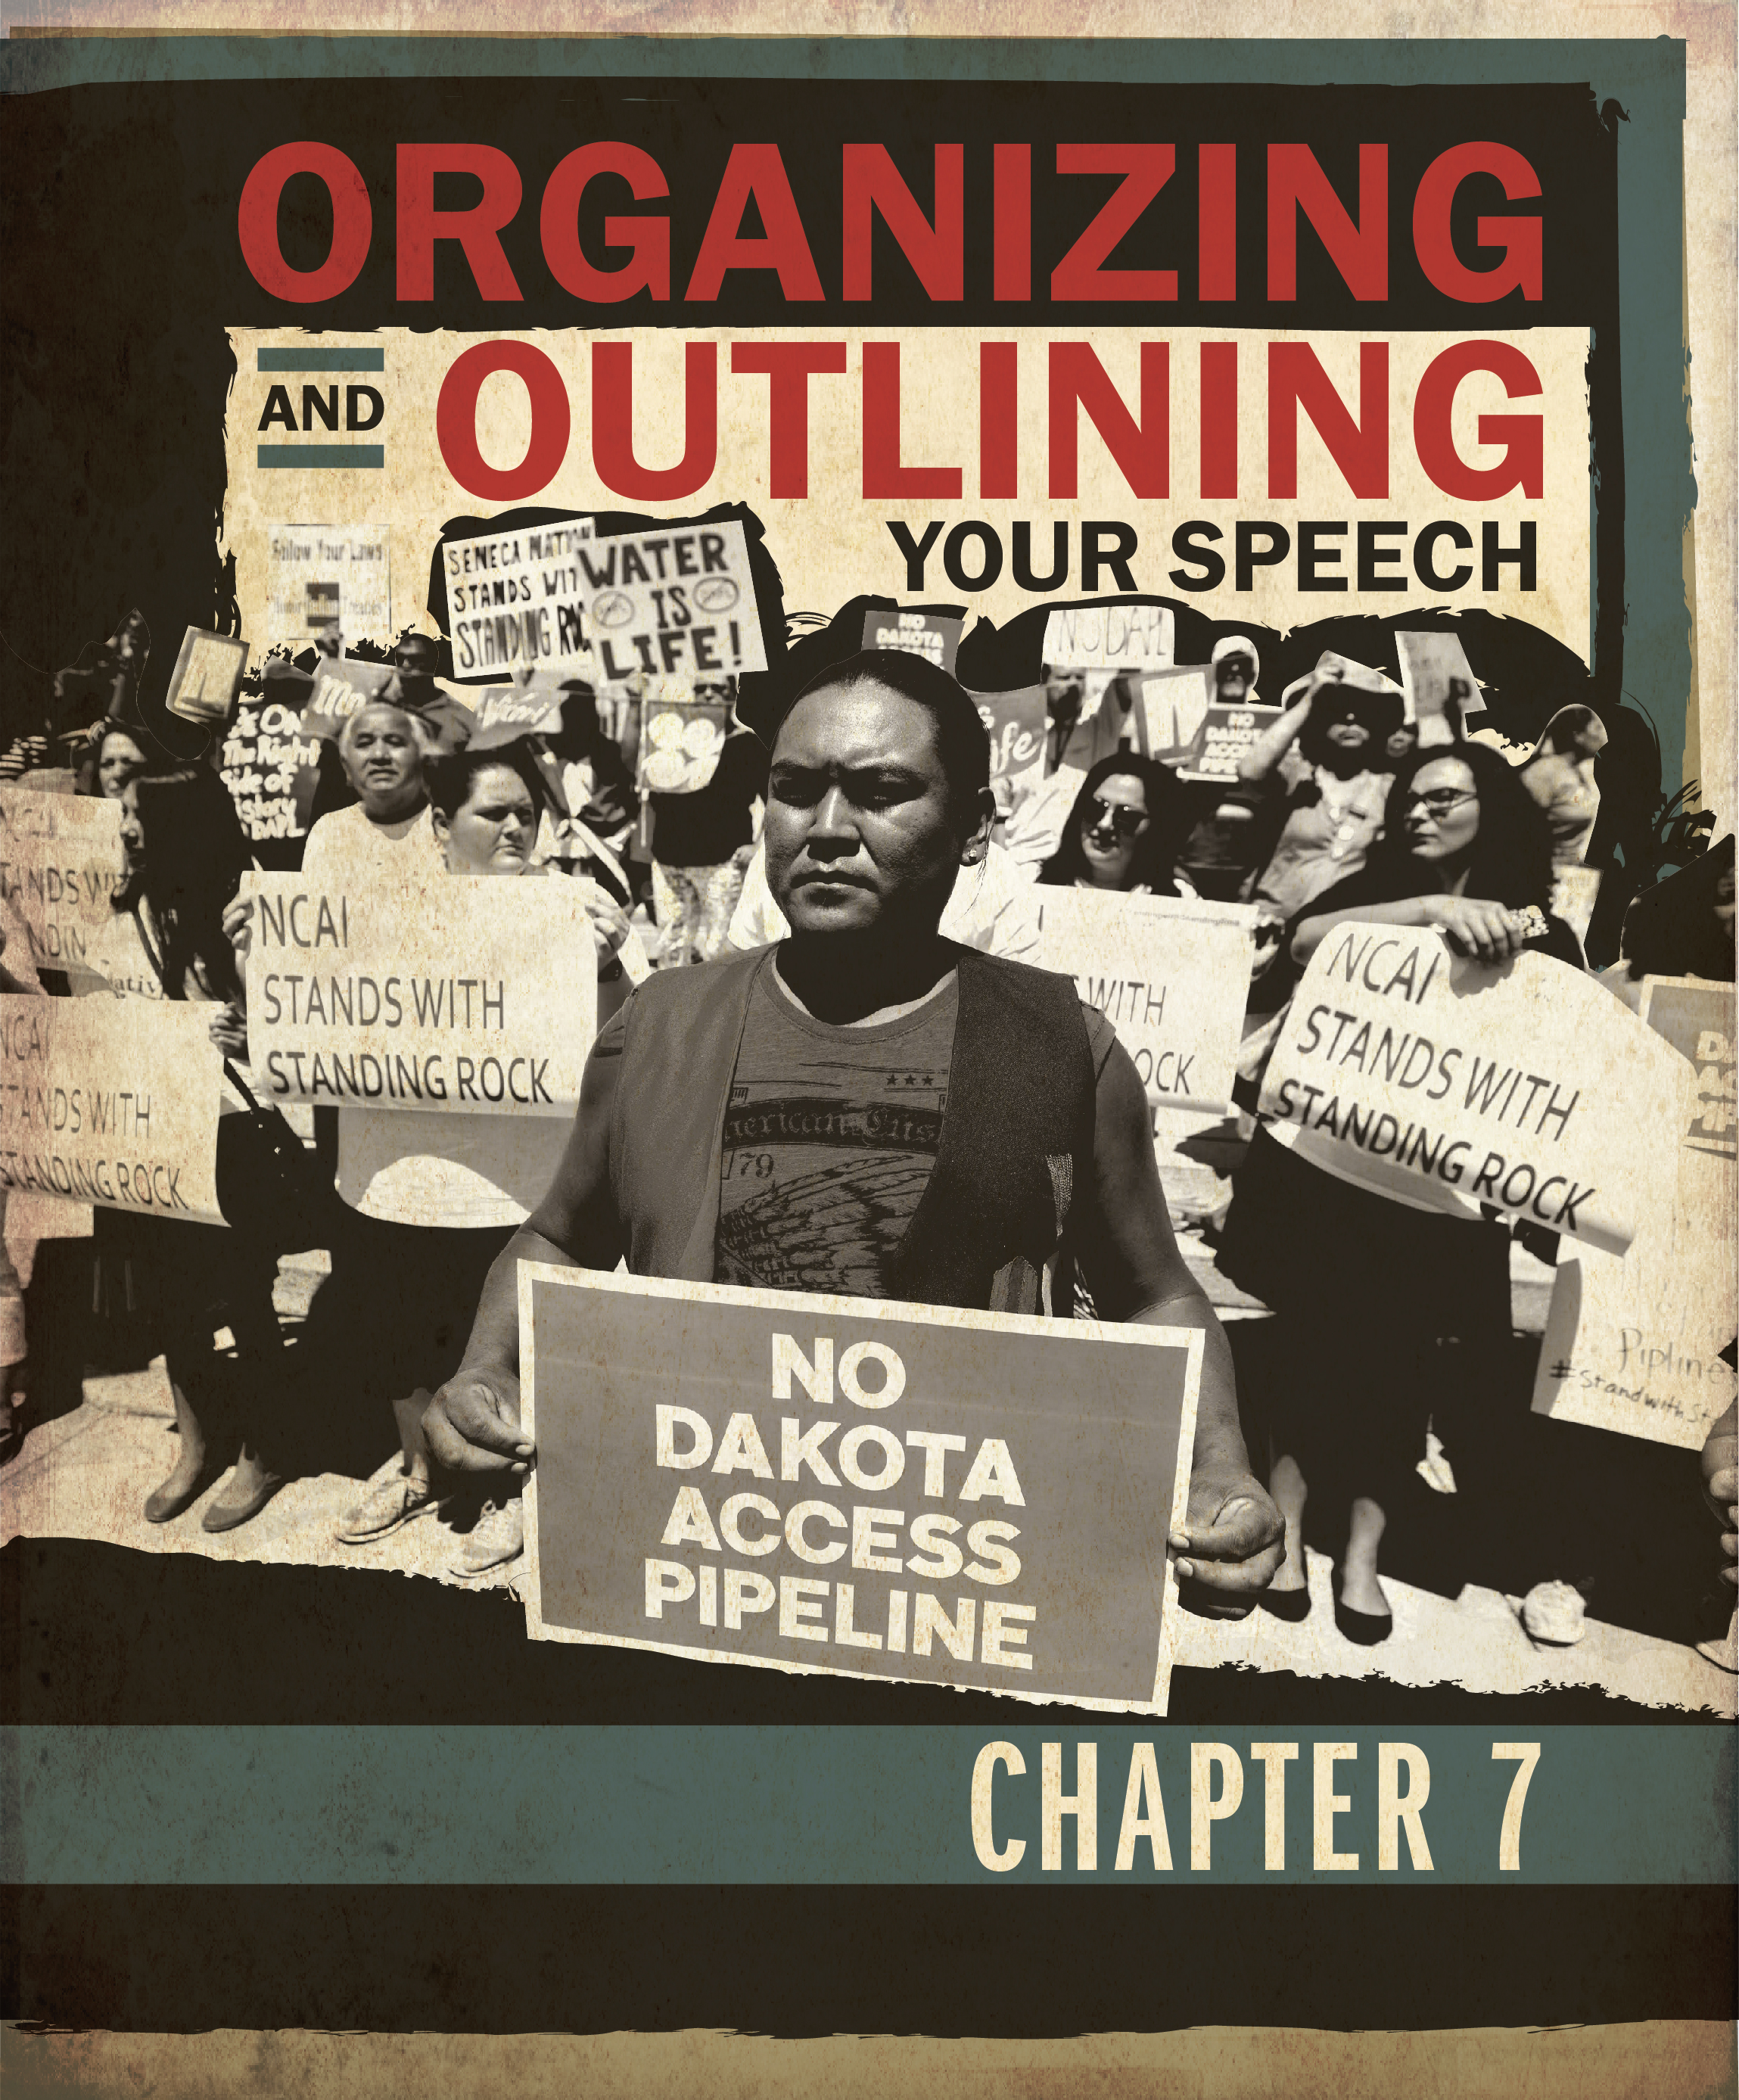 Chapter 7:  comparing speech organizing to organizing a protest